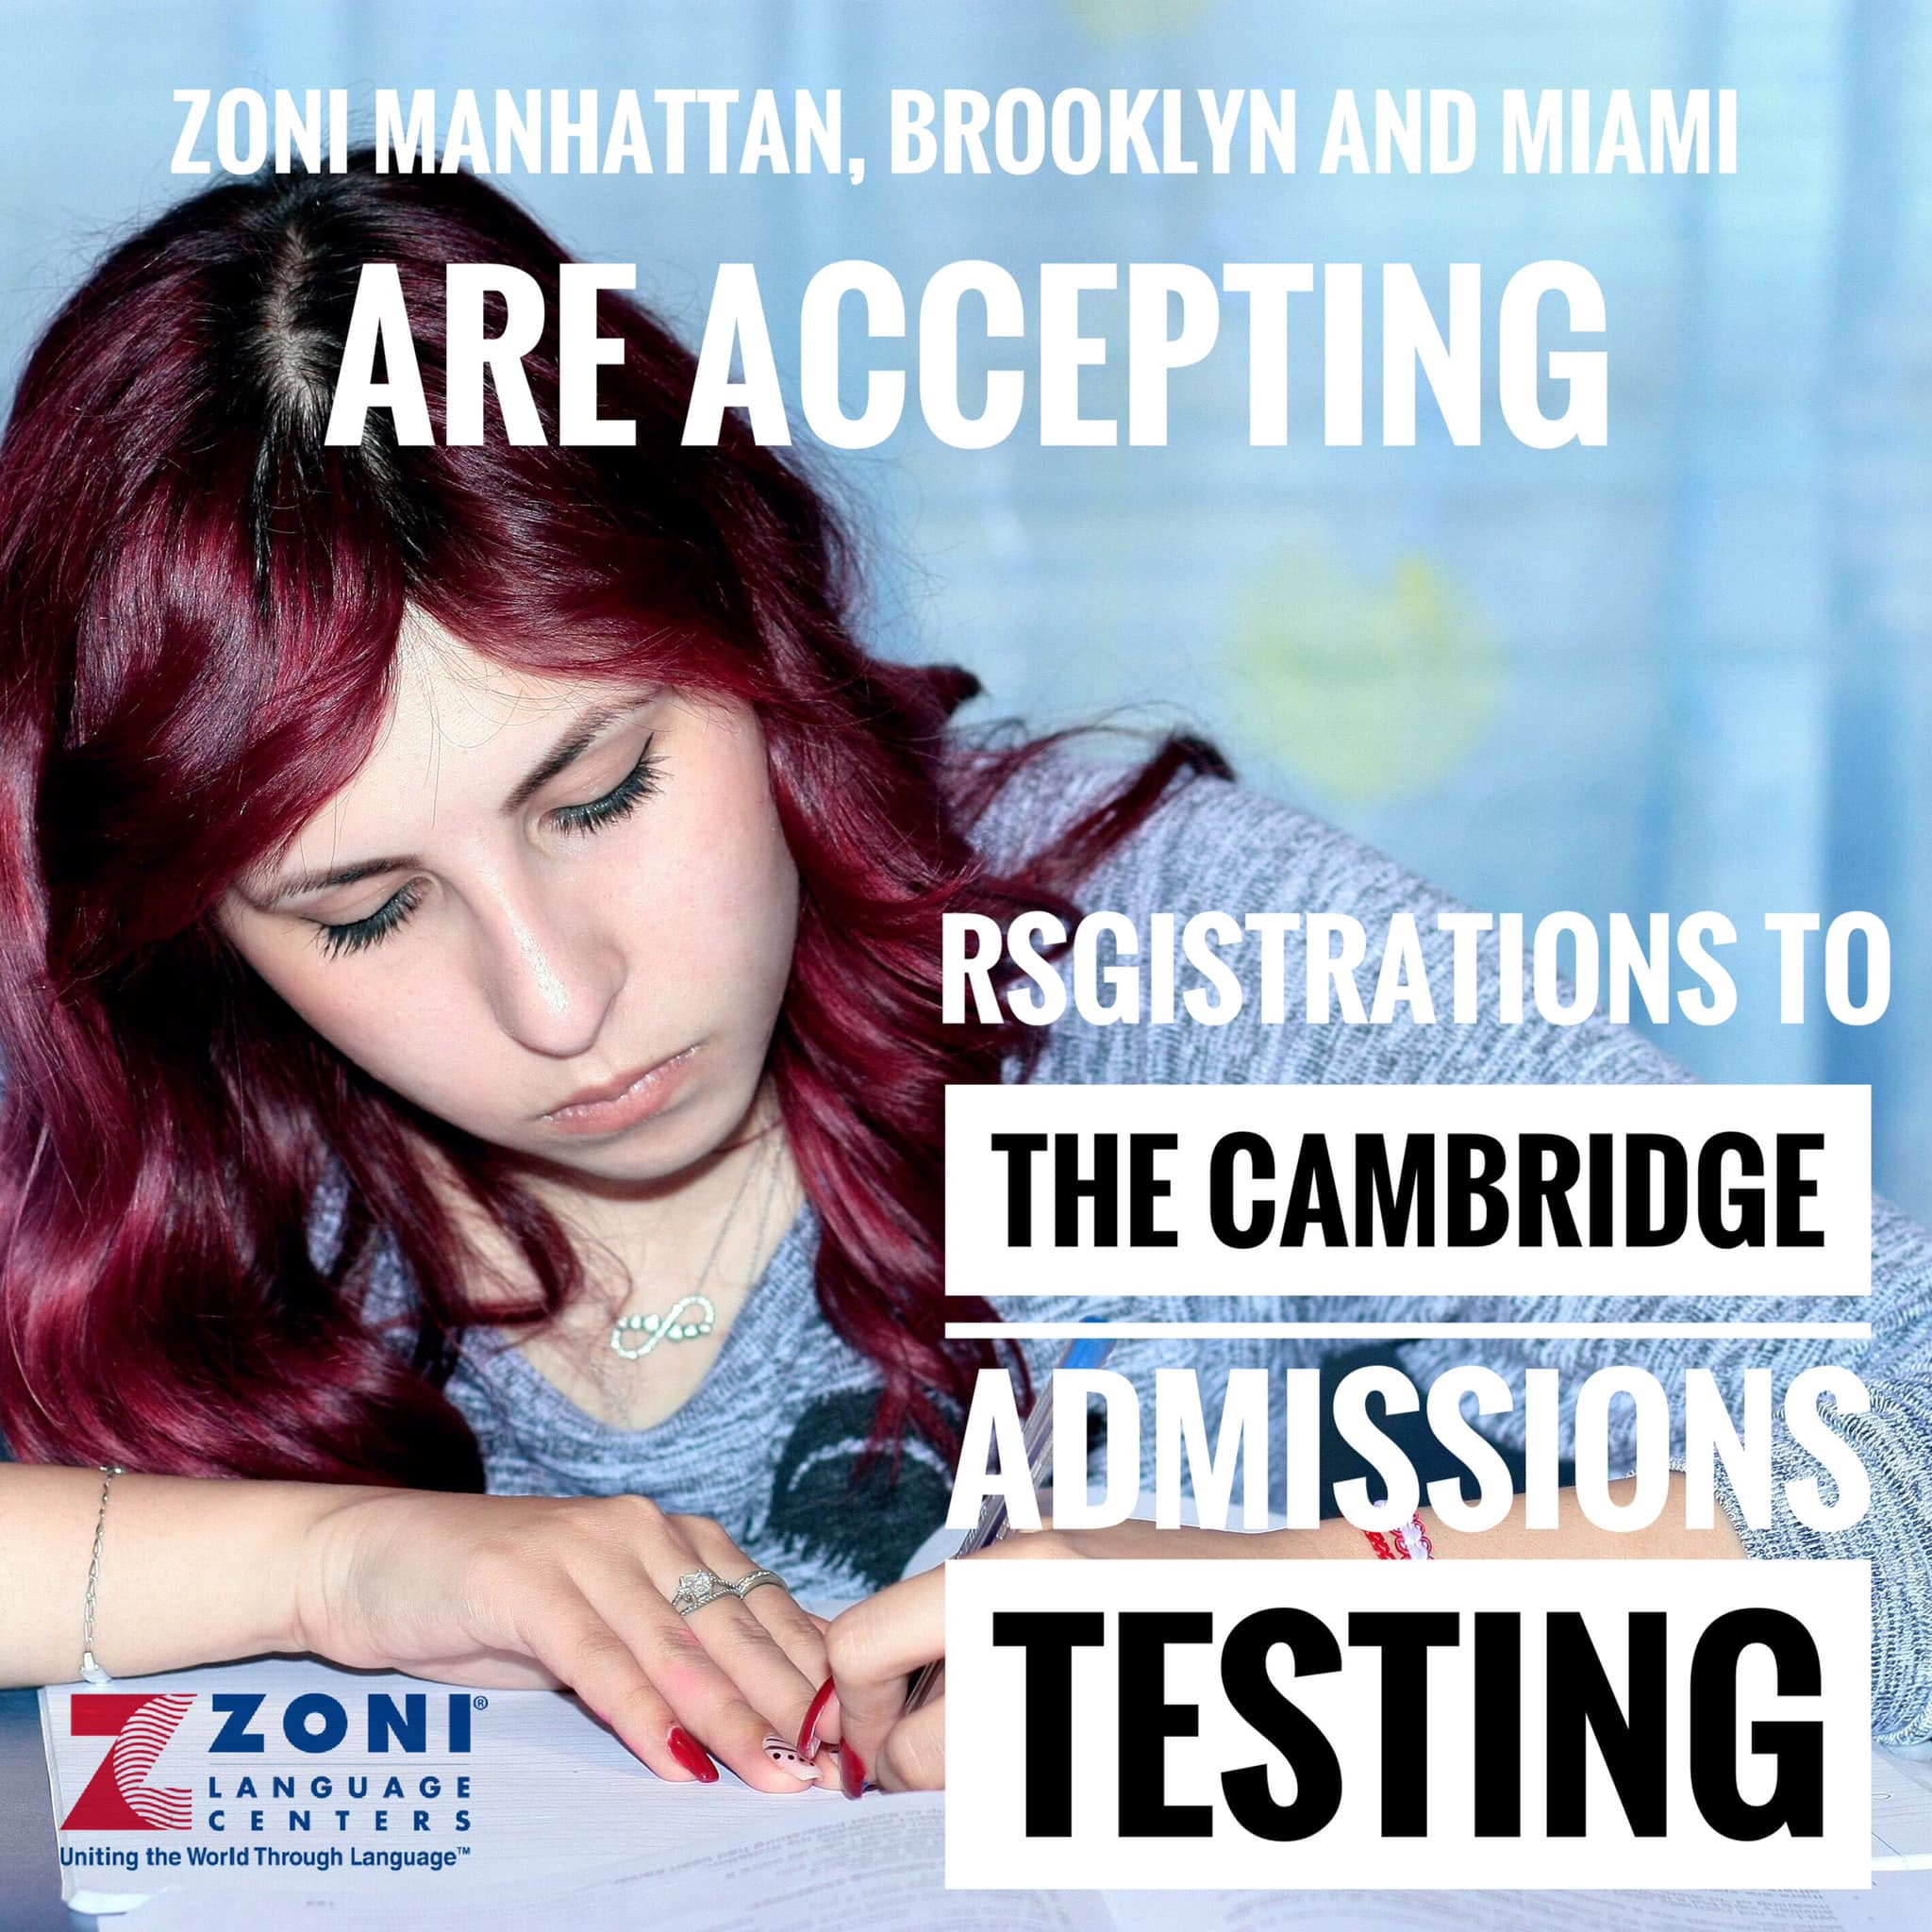 The Cambridge Admissions Testing at Zoni in NY and FL